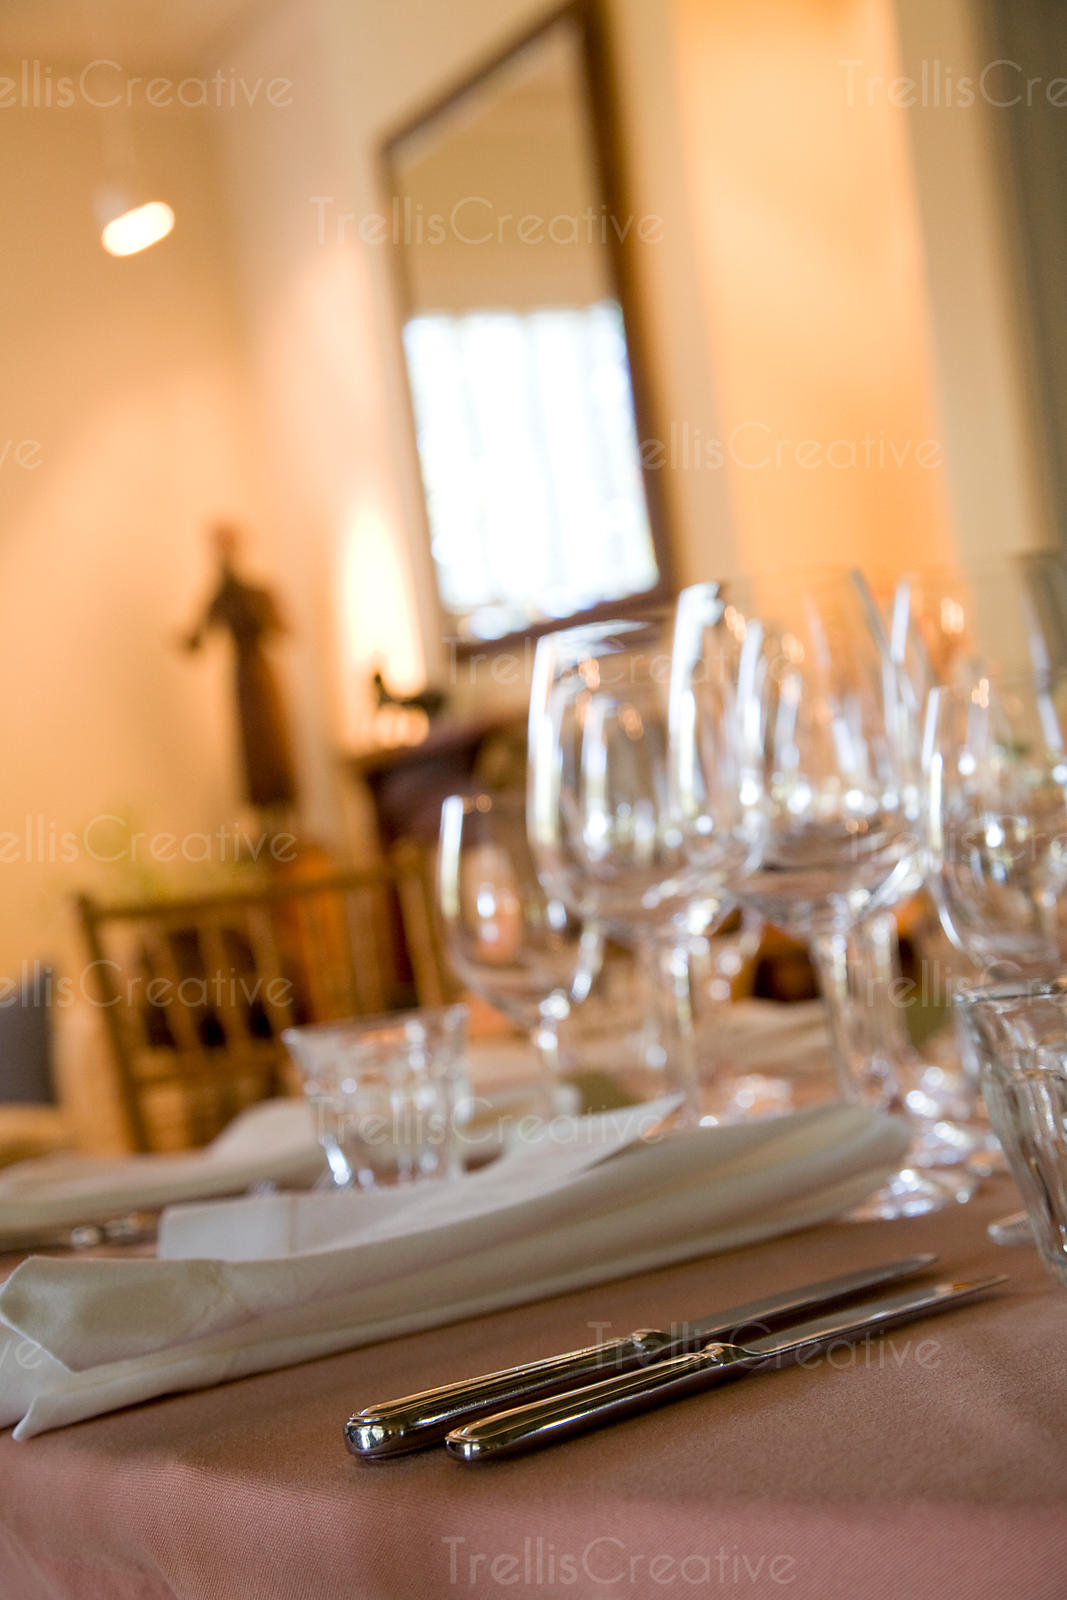 An elegantly set table awaits guests